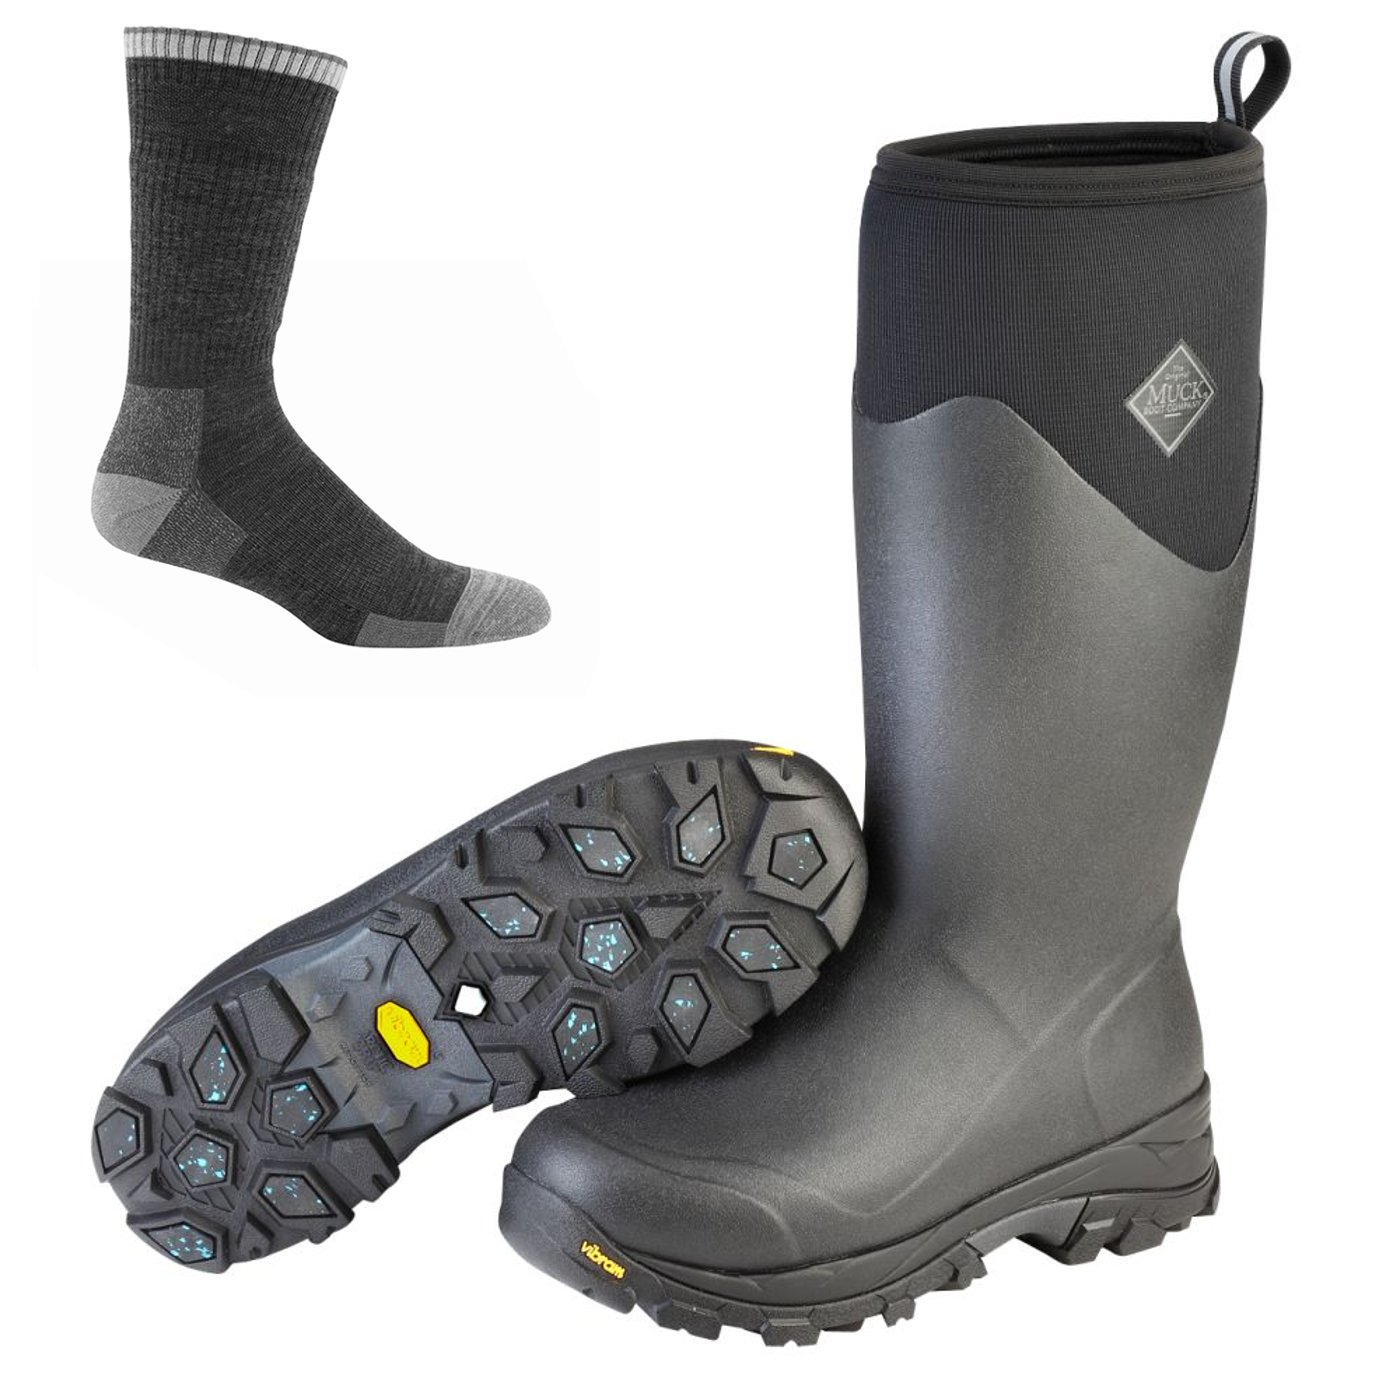 Muck Boot メンズ B077PDQDJR 10 D(M) US|Black W/ Socks Black W/ Socks 10 D(M) US